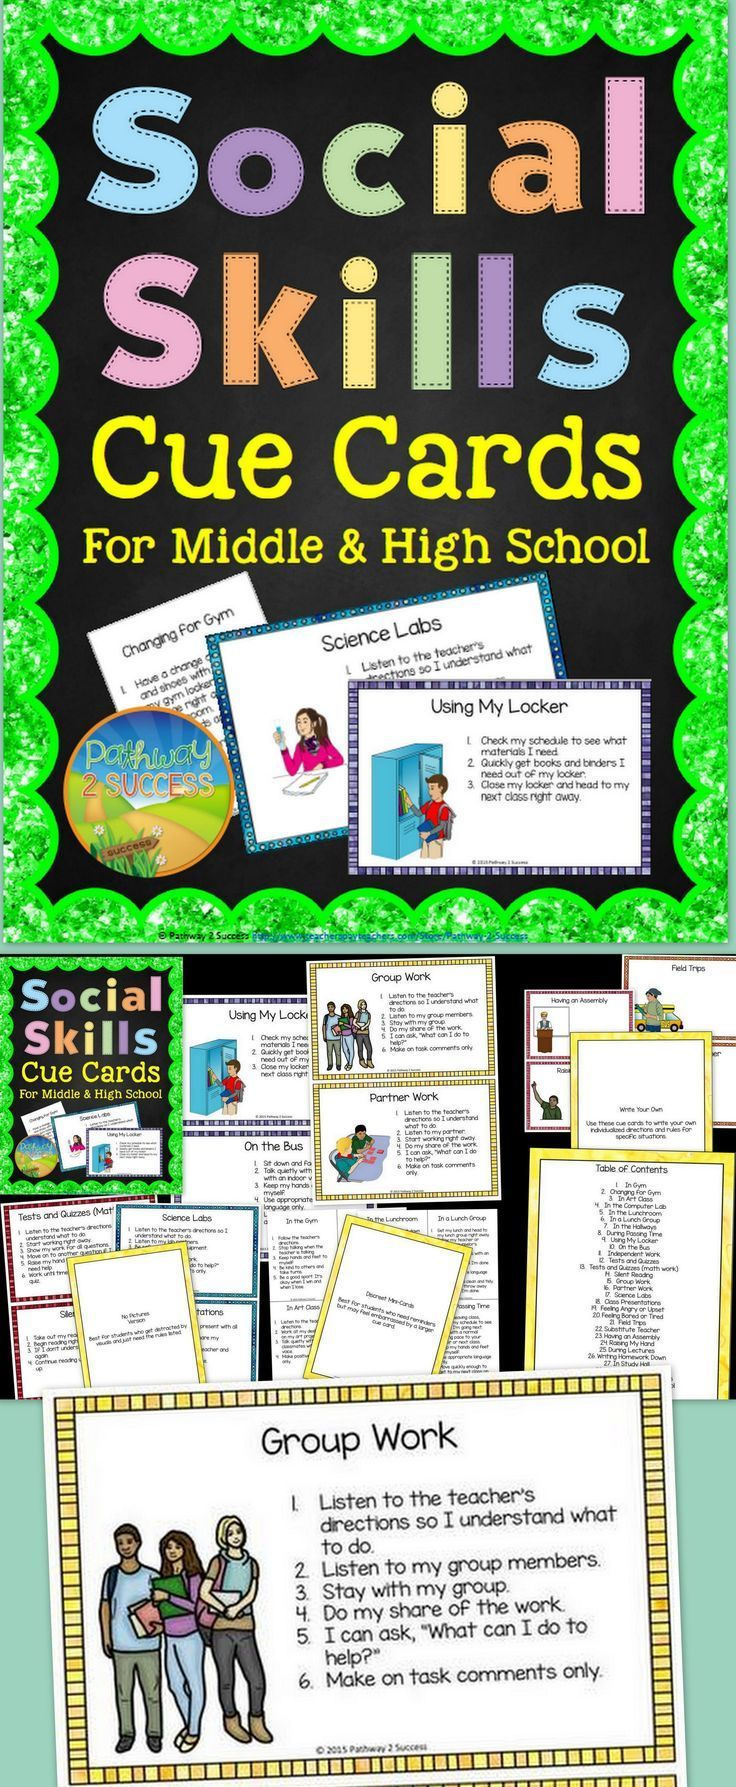 social skills projects 111 improvement in map skills needed 112 does well on projects 113 good awareness of current events 114 poor comprehension  report card comments by vishal jain.